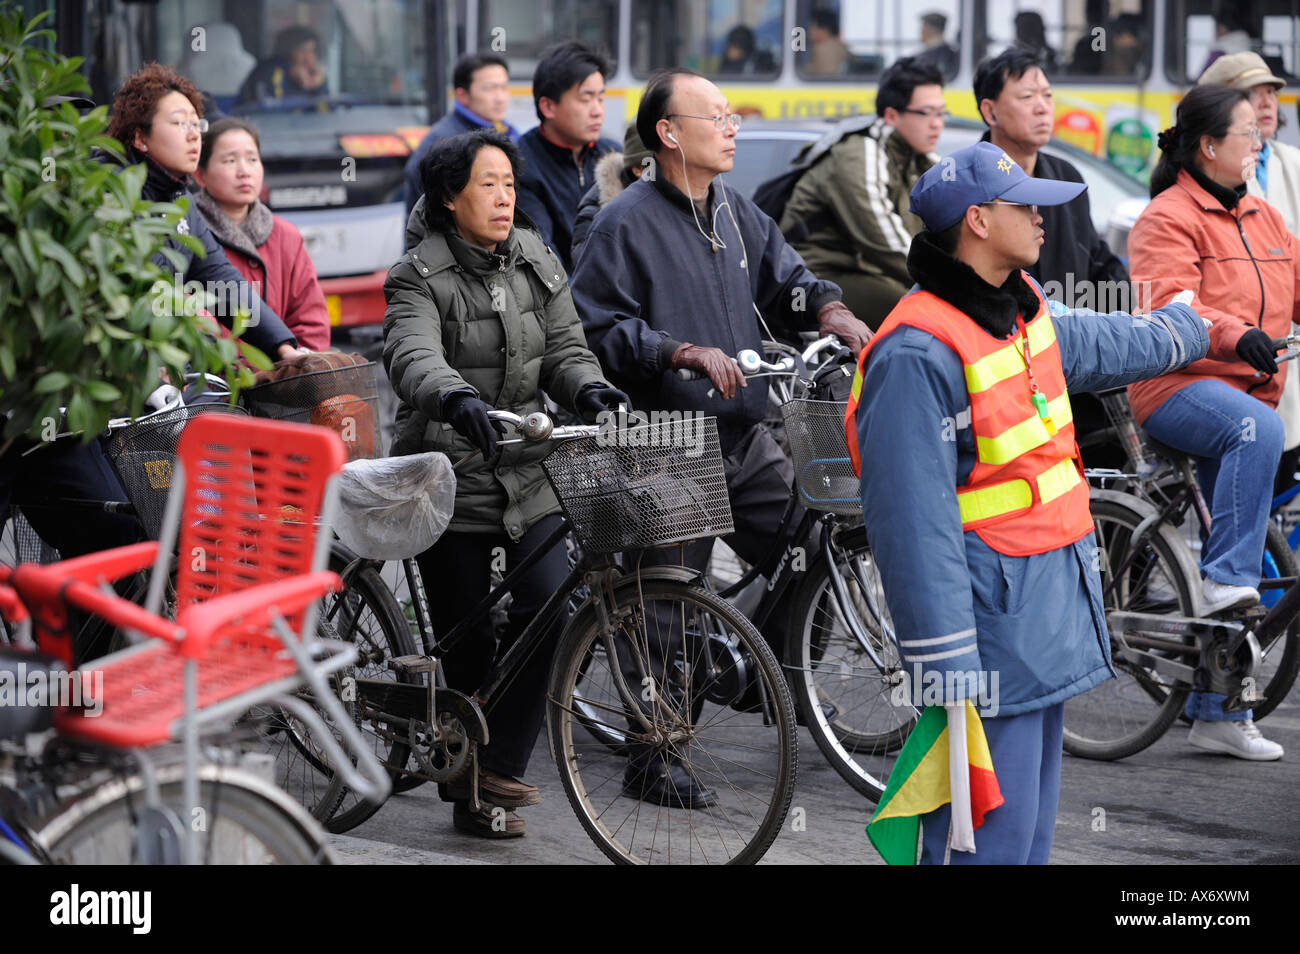 A man trying to keep cyclists following the traffic rule at a crossing in Beijing, China. 20-Mar-2008 - Stock Image